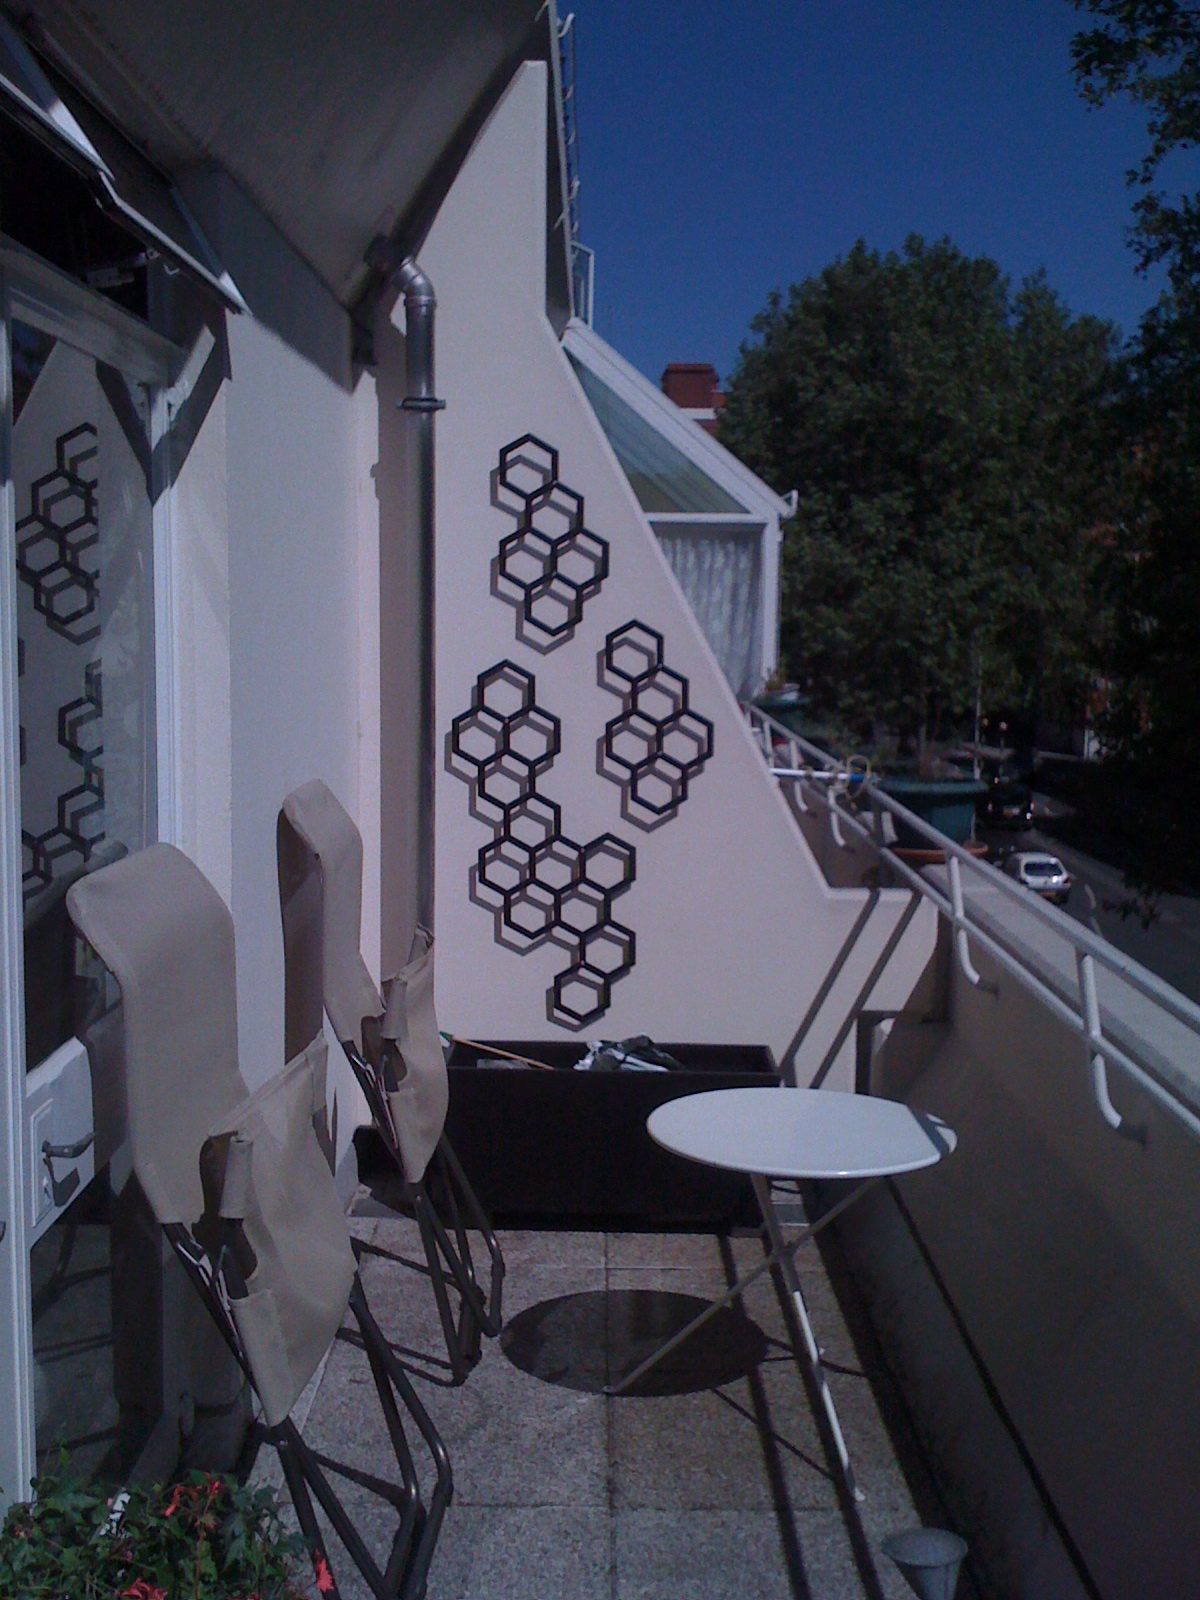 Garden wall art trellis: installation at Rory's in the